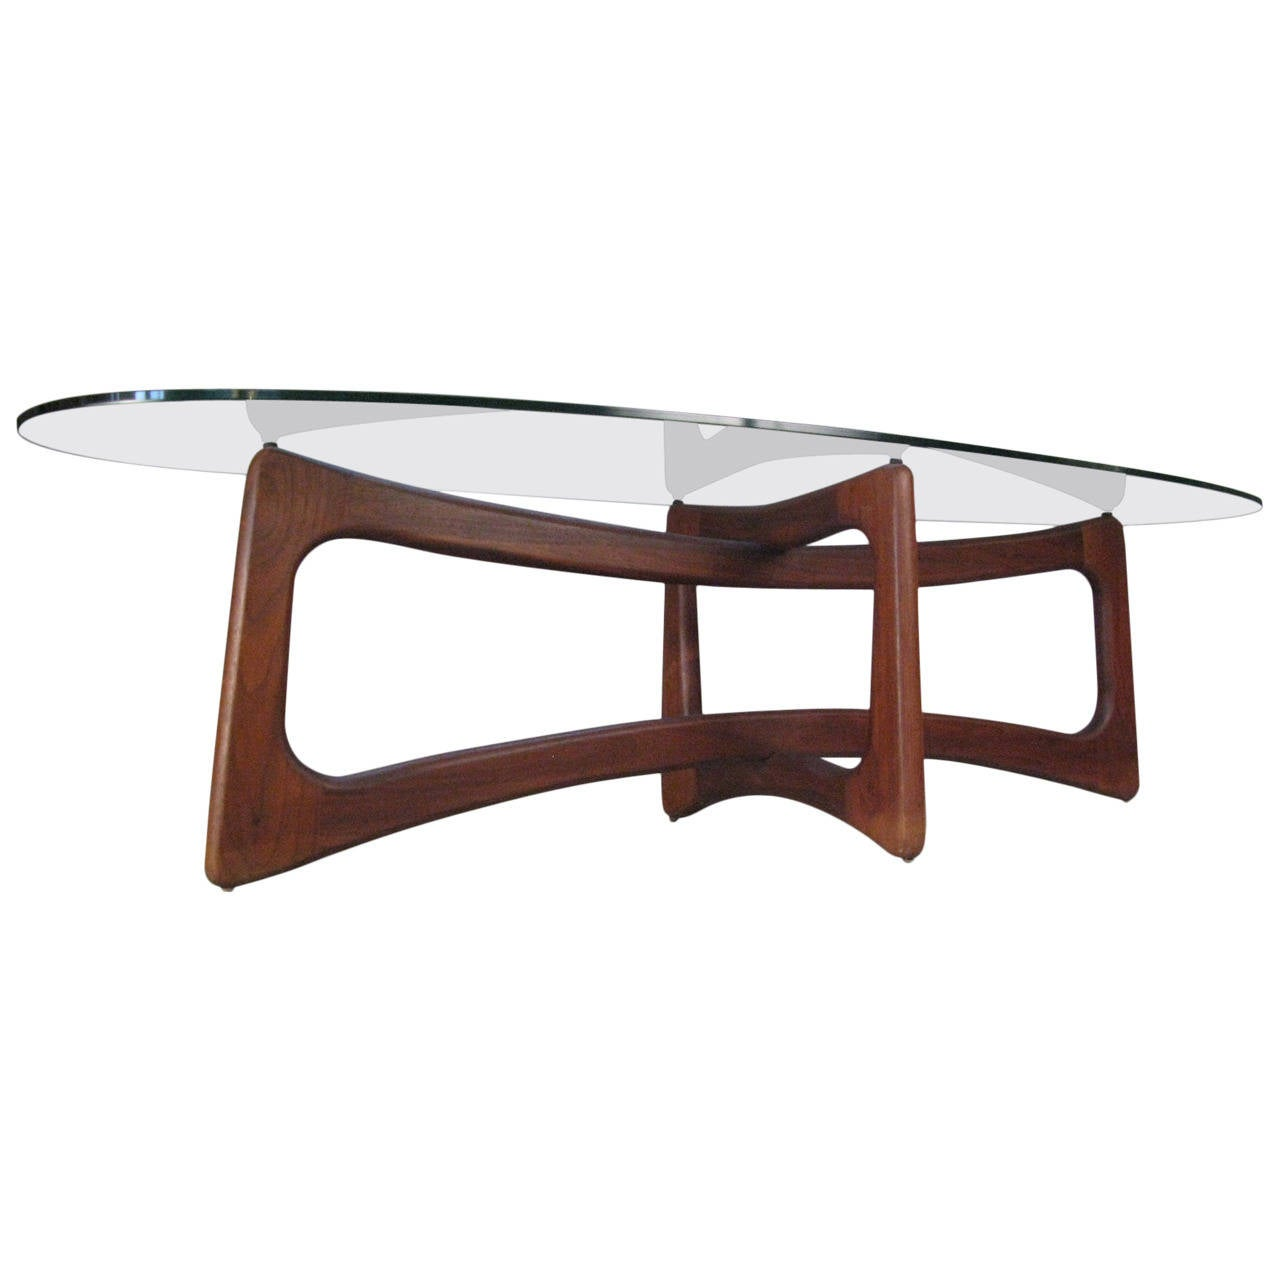 Sculptural Modern Walnut And Glass Table By Adrian Pearsall At 1stdibs